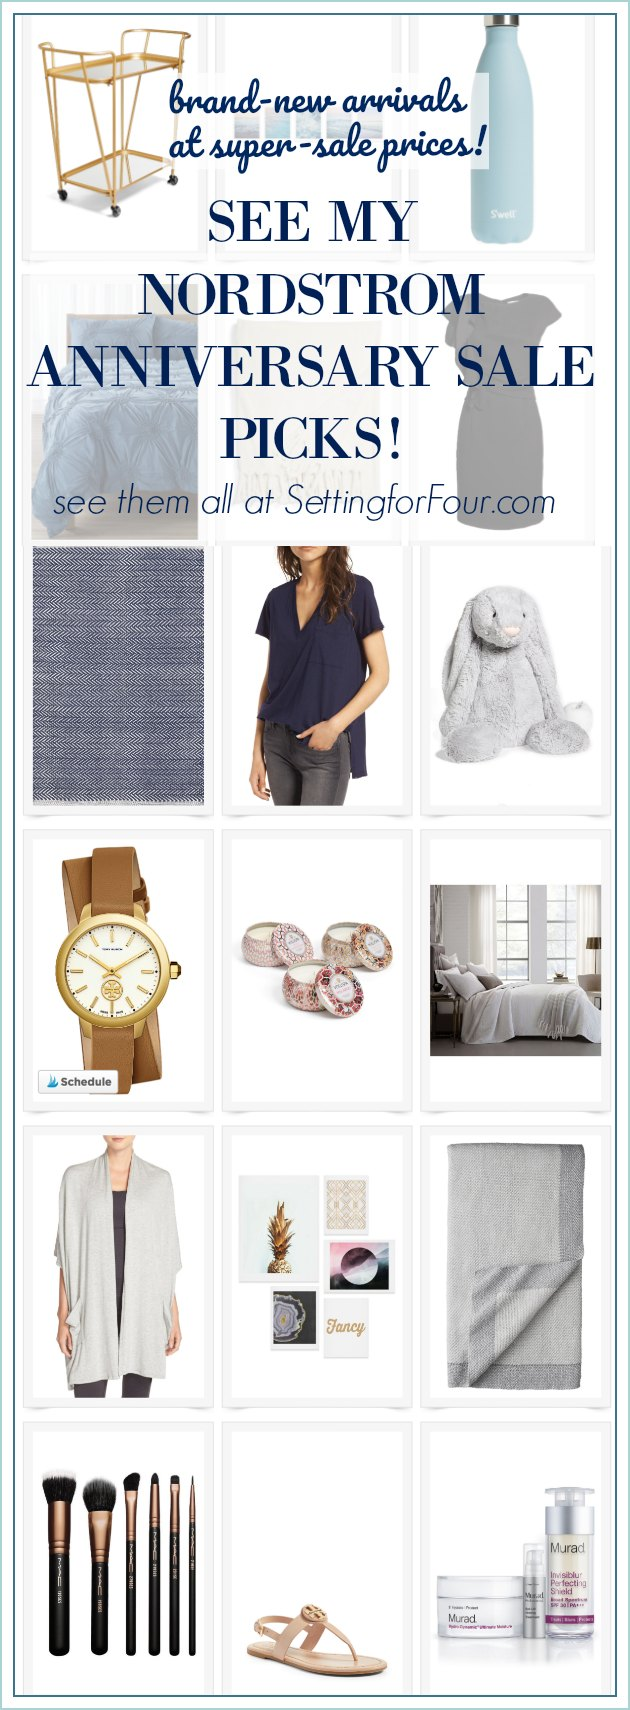 See my Nordstrom Anniversary Sale picks! Including gorgeous women's fashion, beauty, baby and home decor! The Nordstrom Anniversary sale is on now - don't miss it! It's a one-of-a-kind shopping event, where you'll find brand-new arrivals at super-sale prices!!